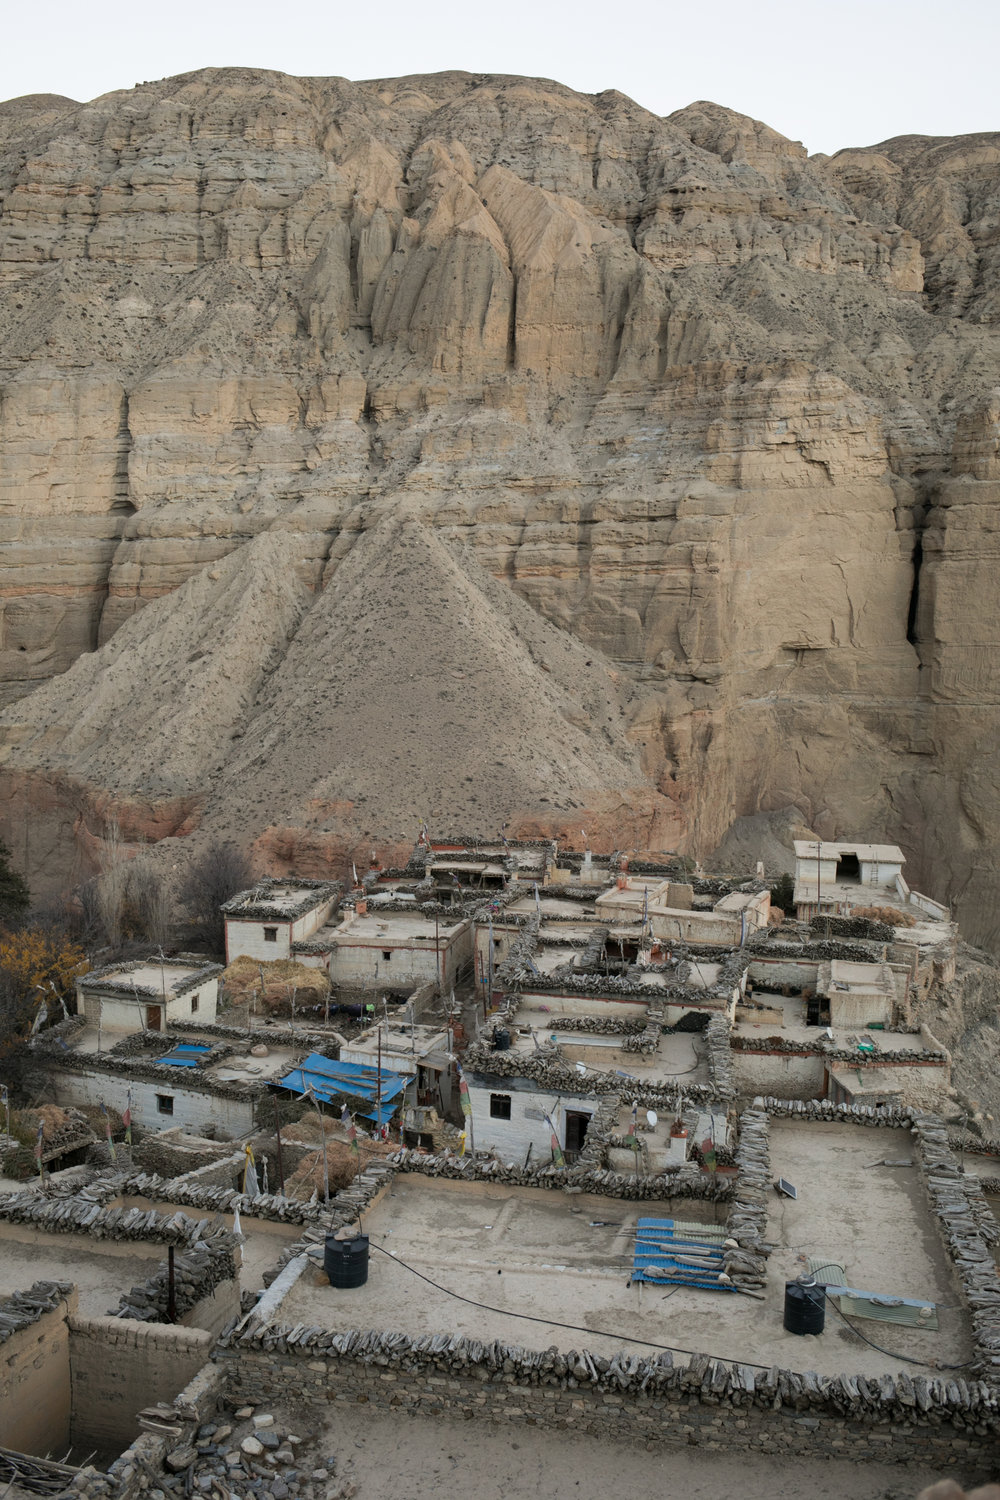 Chele is a small village and is one of the first places to stay in the Upper Mustang. Firewood and kindling is cut and staked around the roof edge to dry.  This region has very little access to resources so the community prepares for the winter season early.